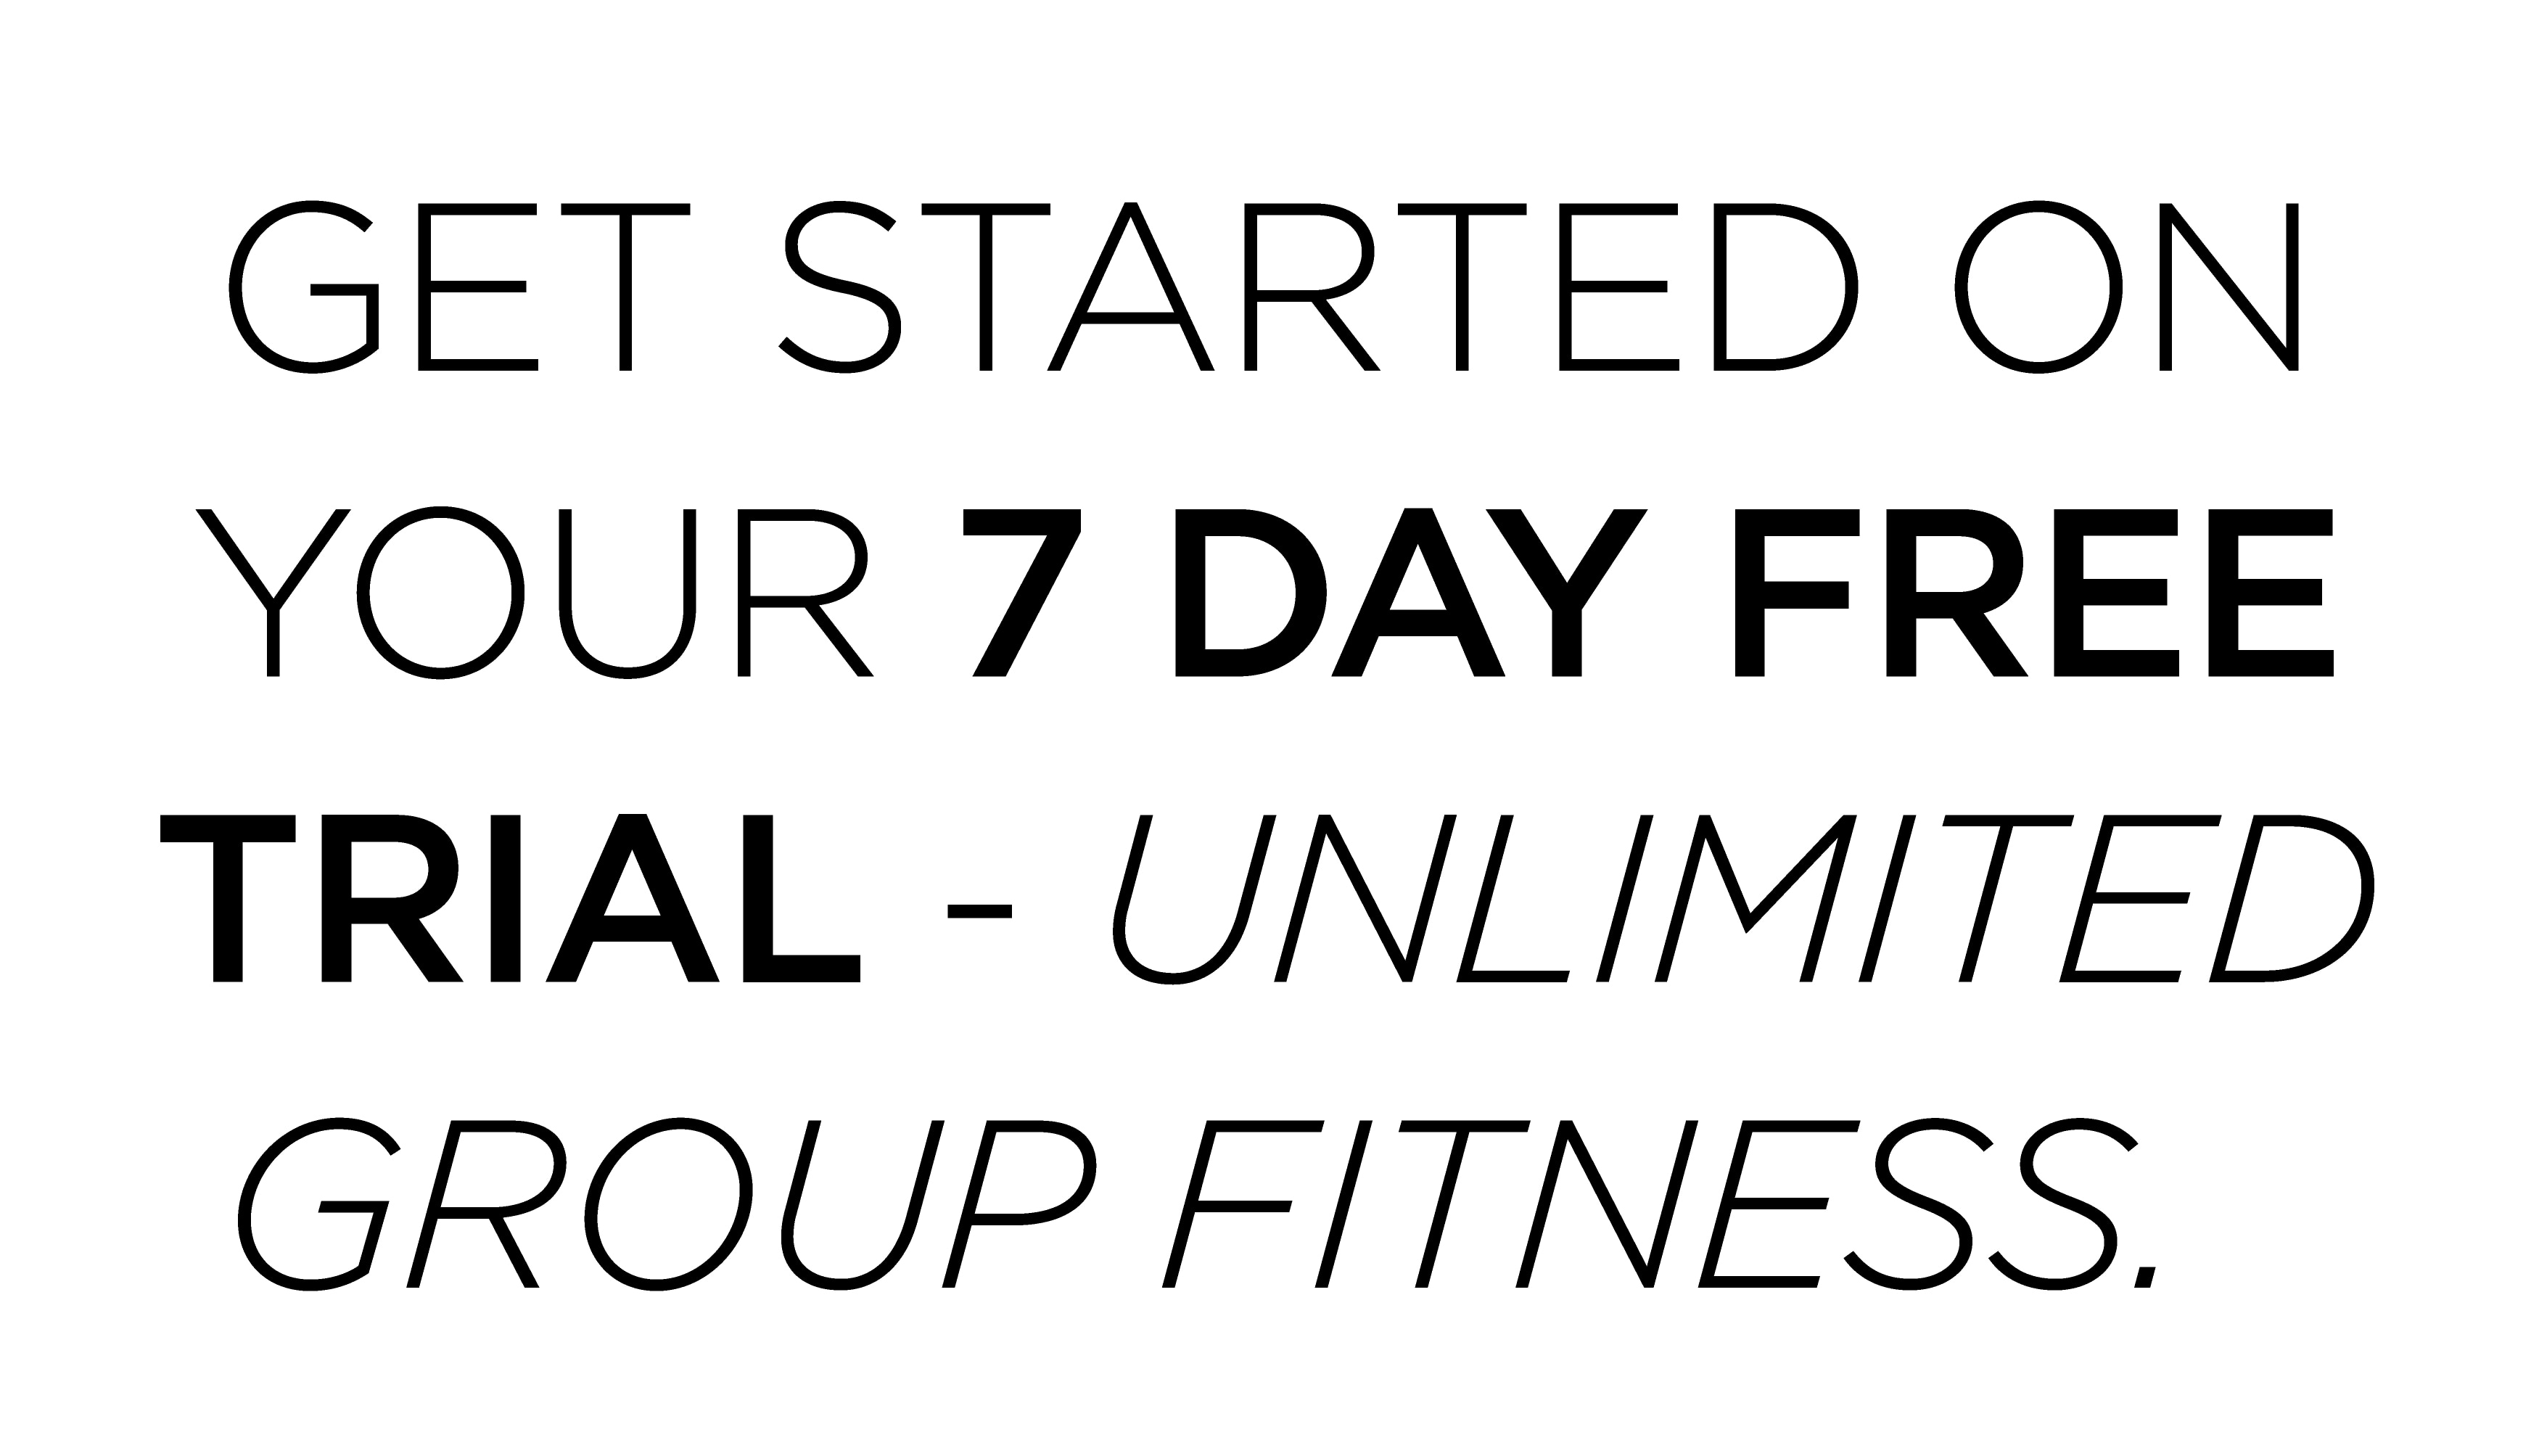 Get Started on your 7 Day Free Trial — Unlimited Group Fitness